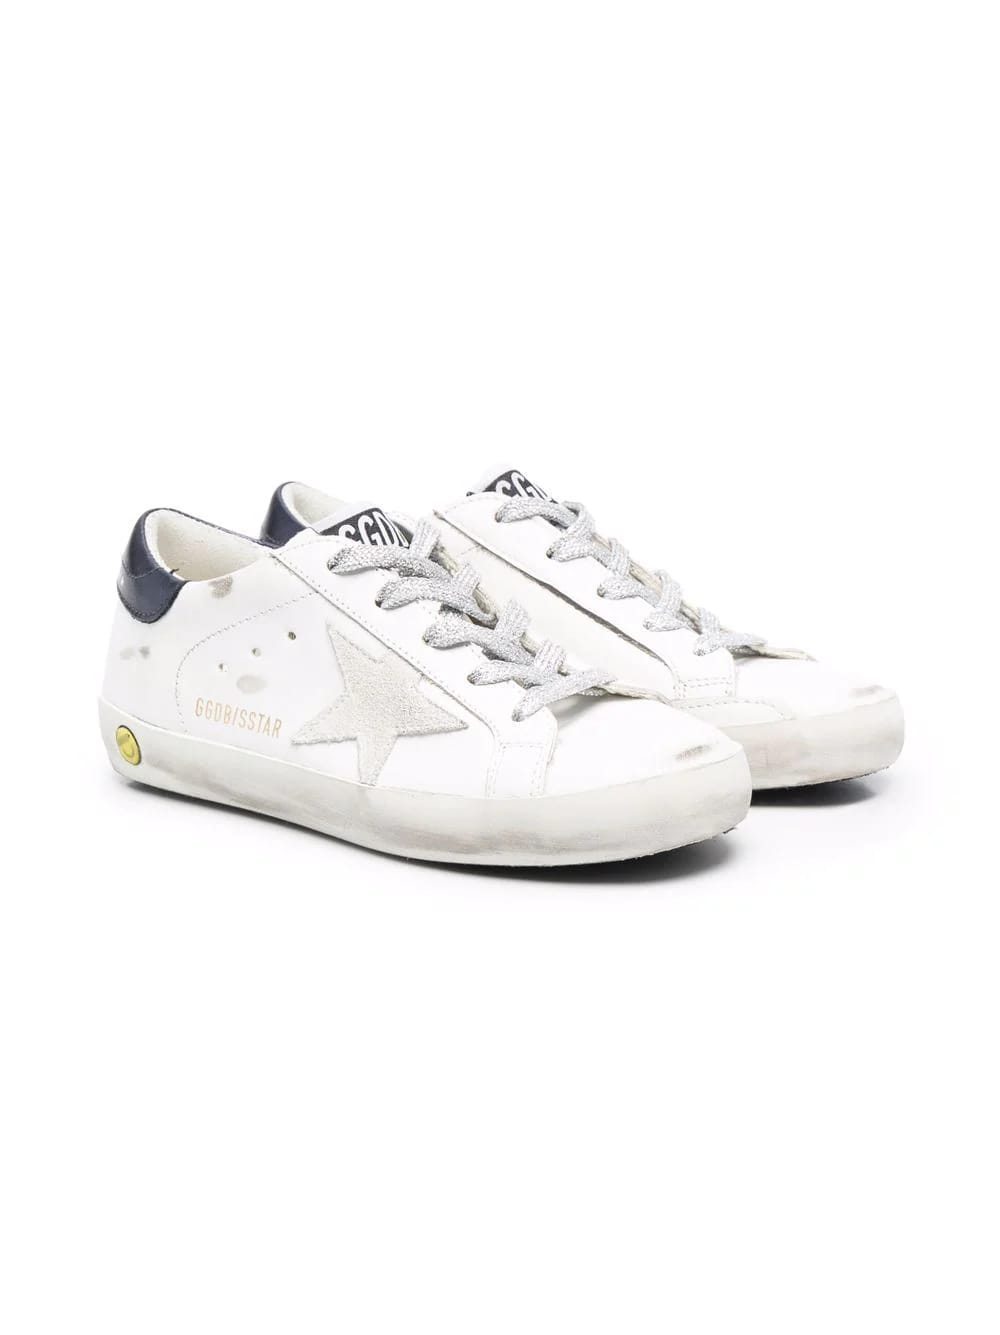 Golden Goose Junior White And Navy Blue Super-star Sneakers With Lurex Laces